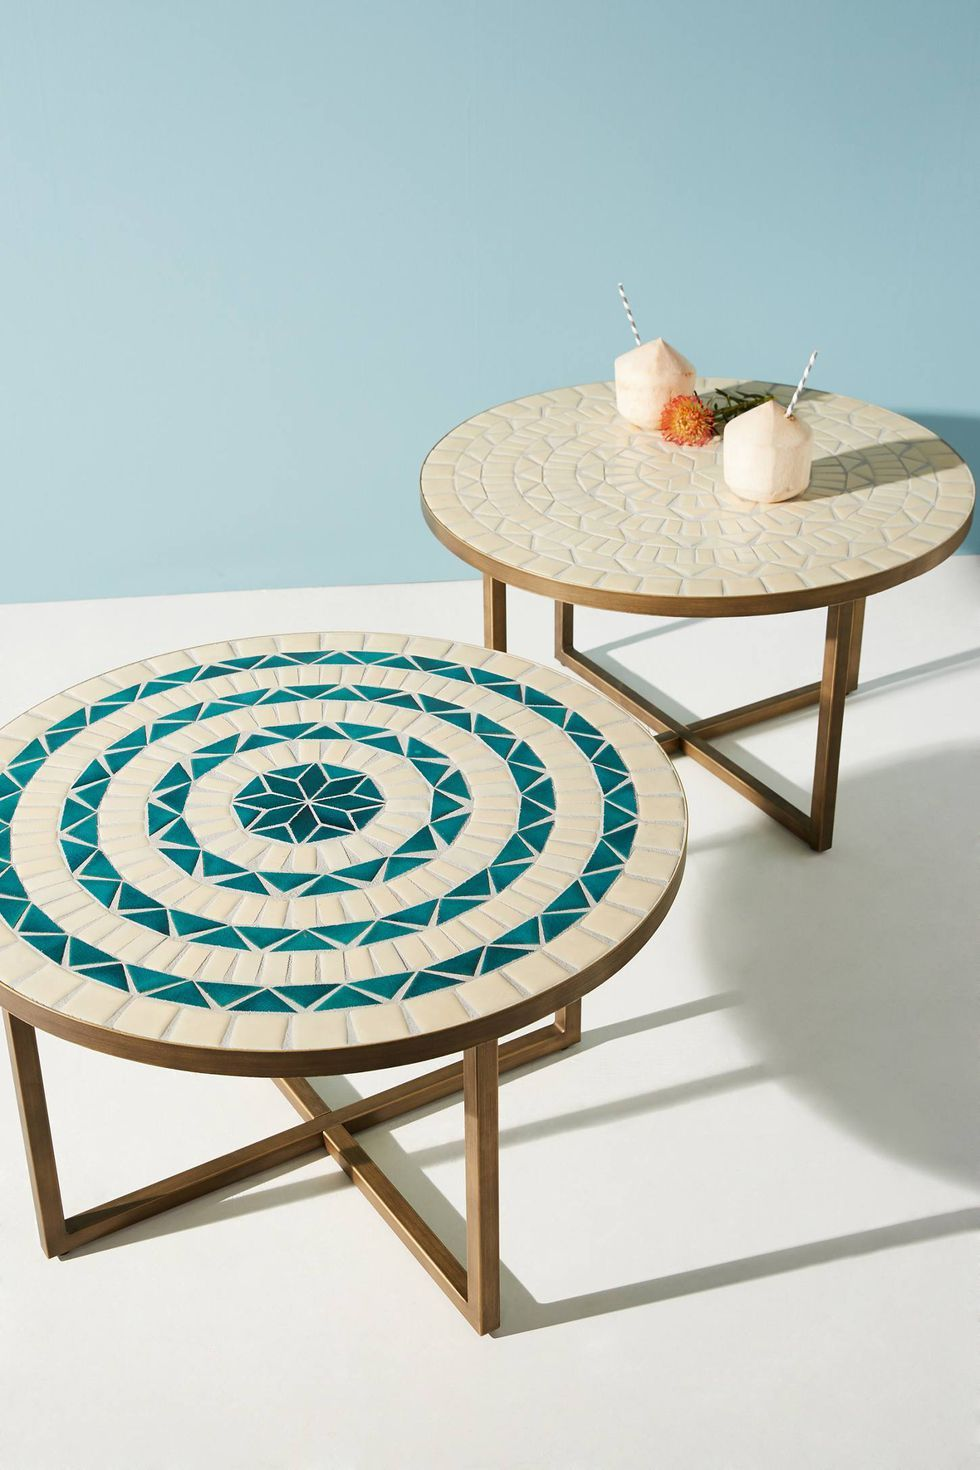 10 Small Coffee Tables That Work In Even The Tiniest Homes Outdoor Coffee Tables Tiled Coffee Table Coffee Table Small Space [ 1470 x 980 Pixel ]